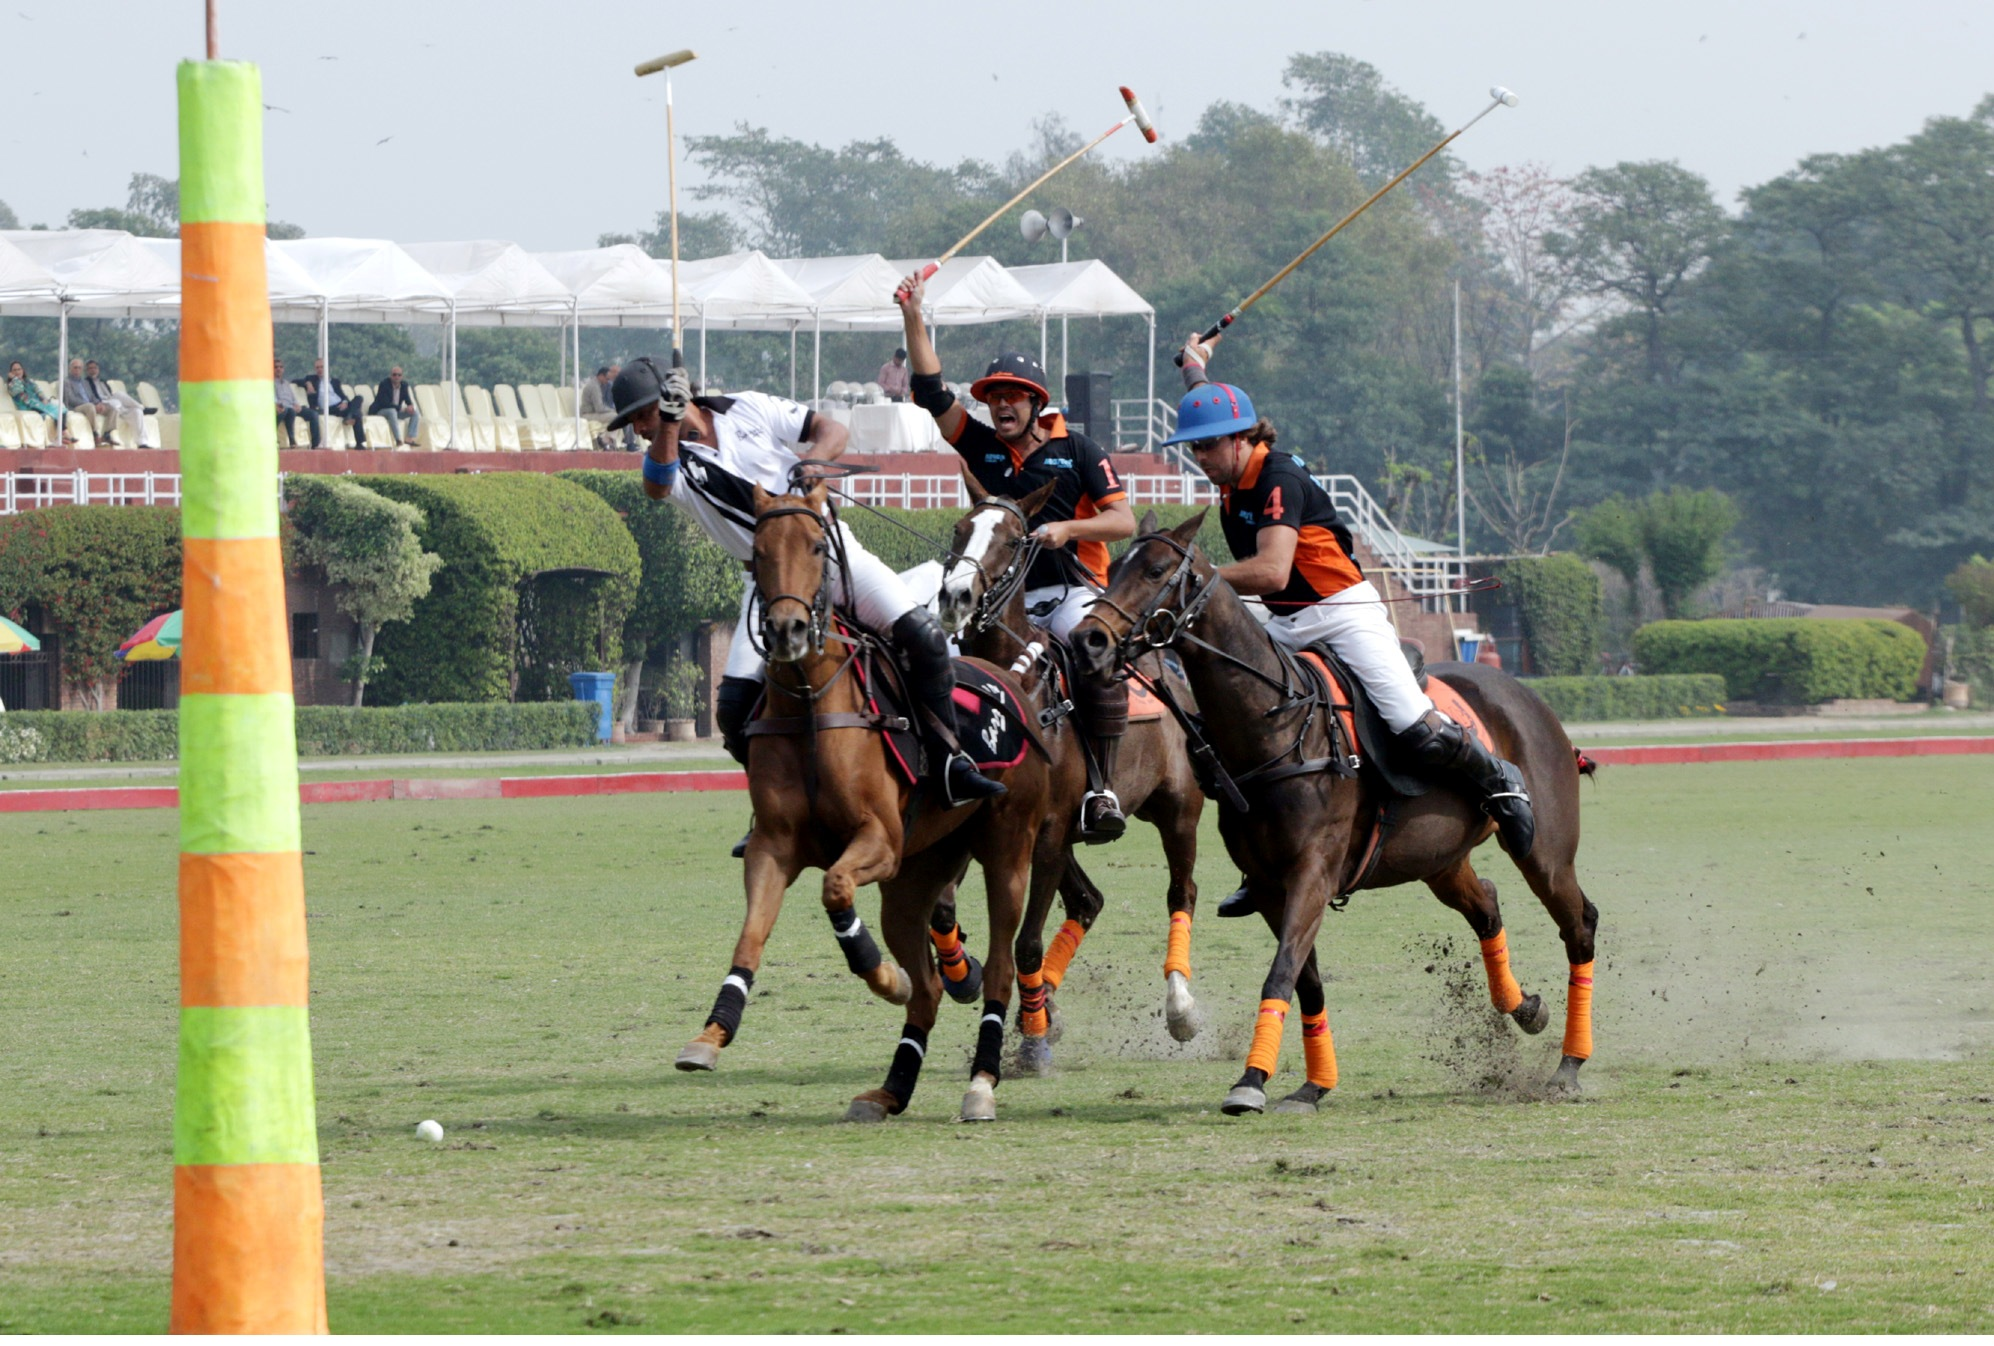 Barry's vs Mater Paints/Newage in the Bank Alfalah National Polo Championhip at LPC